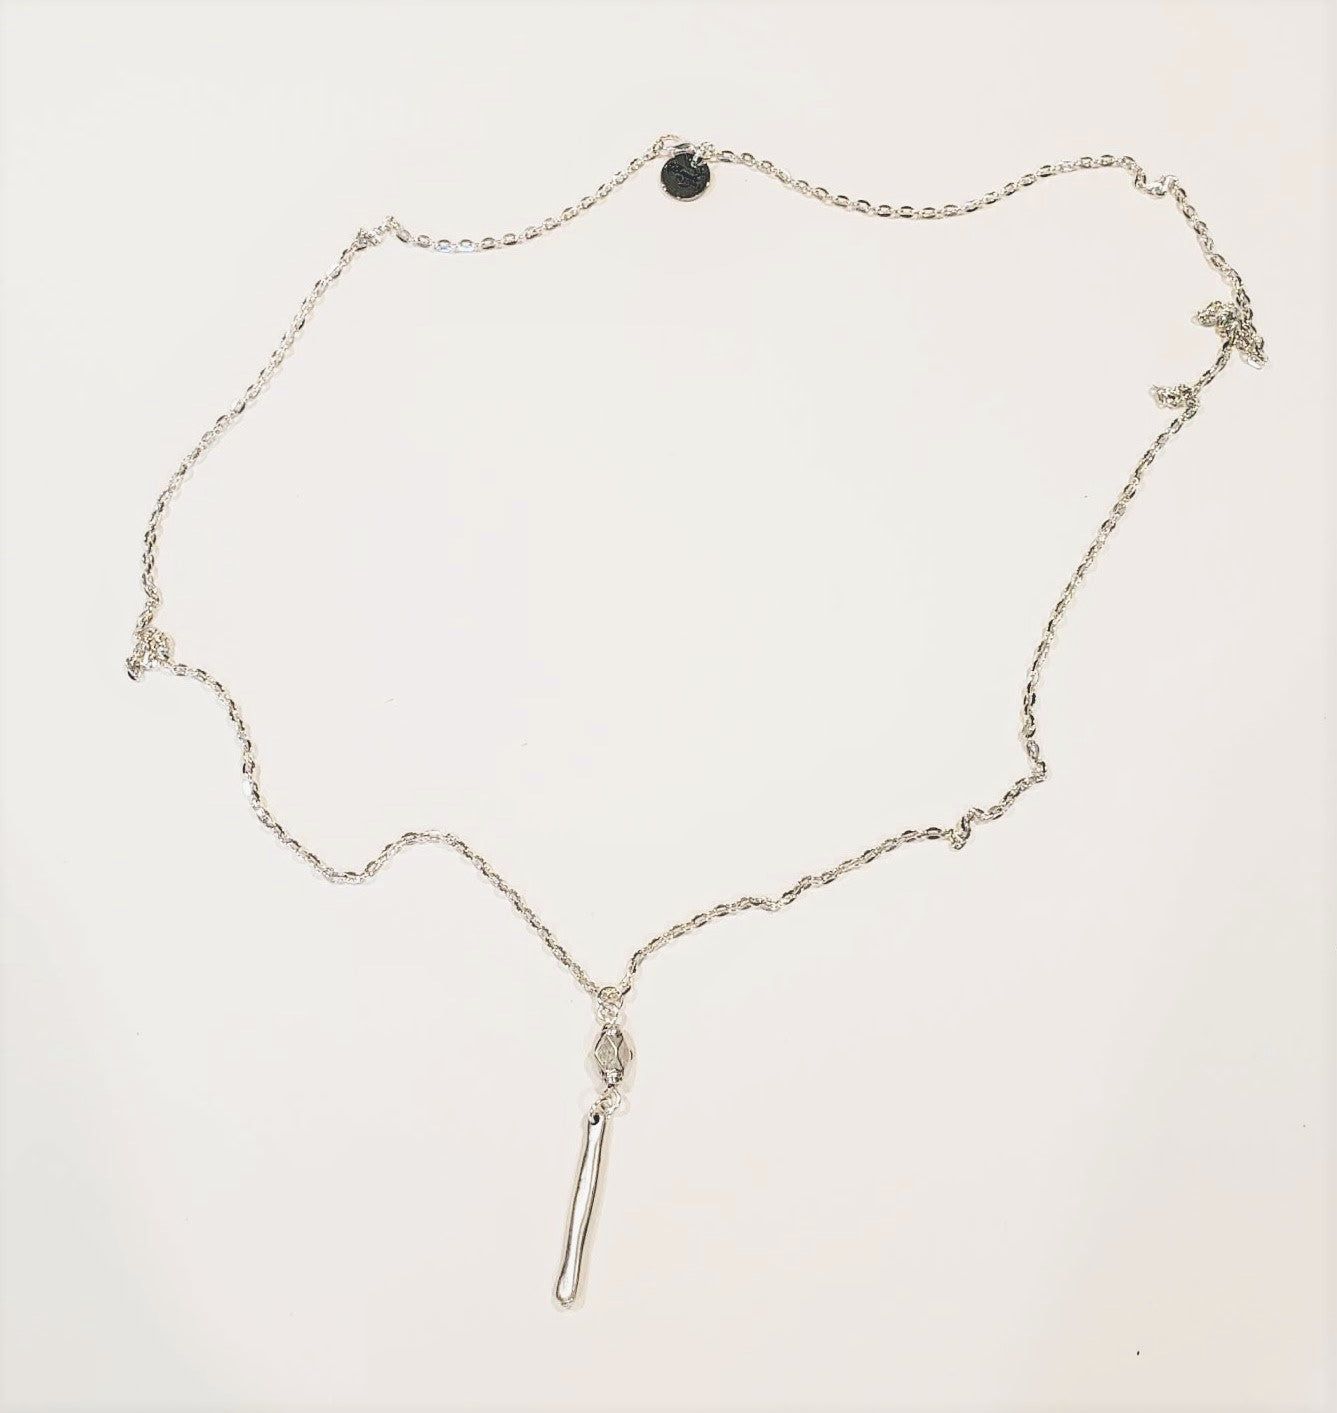 Long Chain Necklace With Drop Pendant